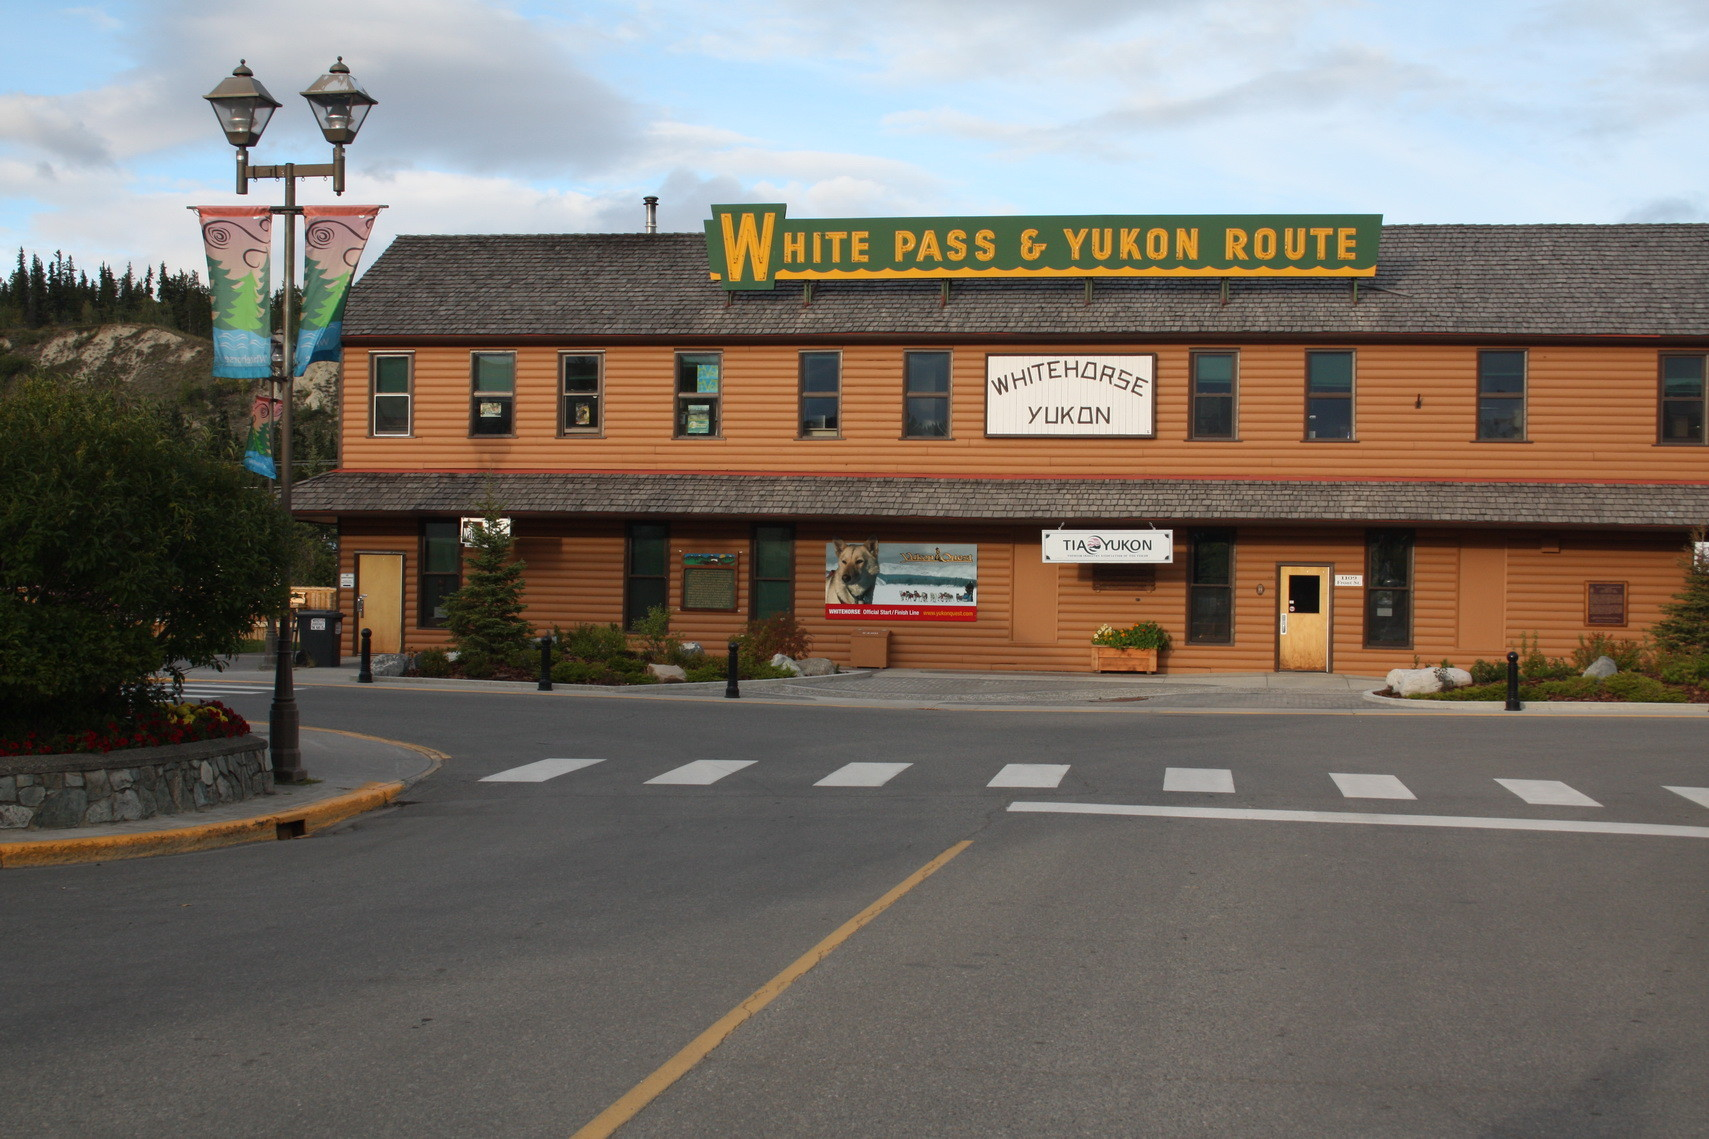 Büro der White Pass Railroad in Whitehorse